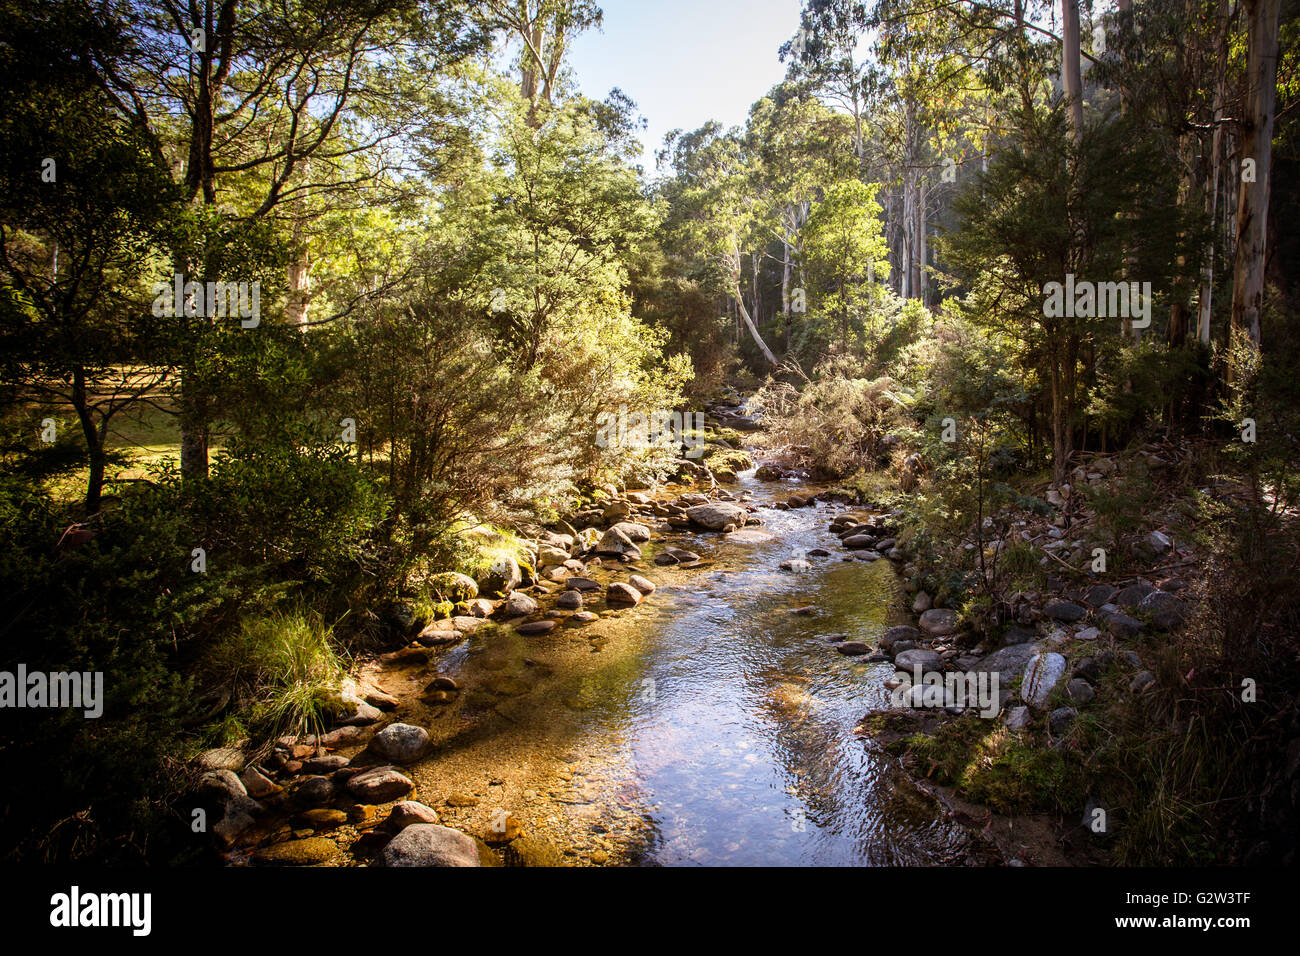 Leather Barrel Creek near Thredbo in New South Wales, Australia Stock Photo